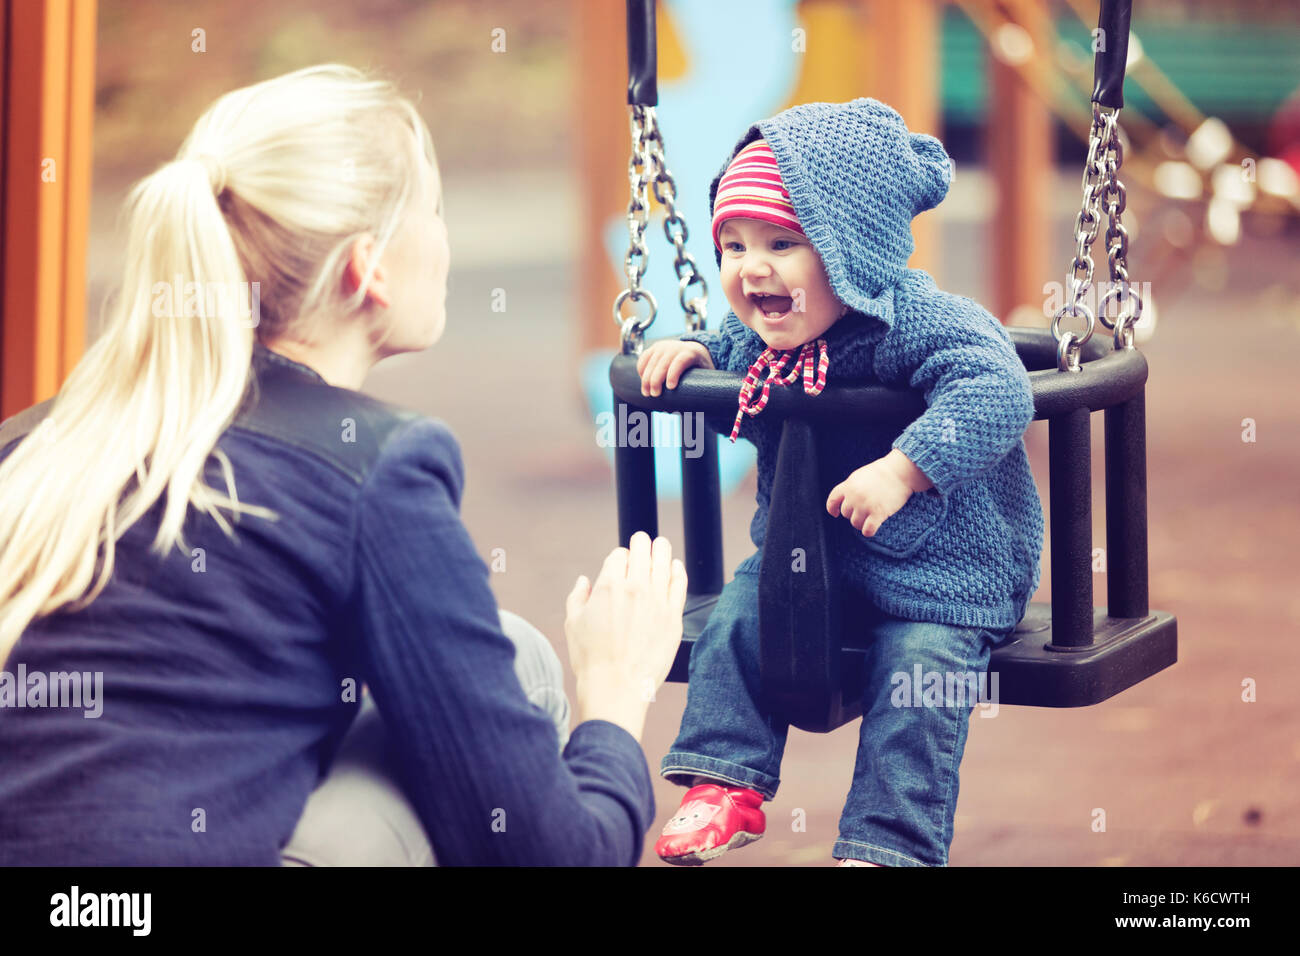 mother with her child having fun on playground swing on autumn day - Stock Image